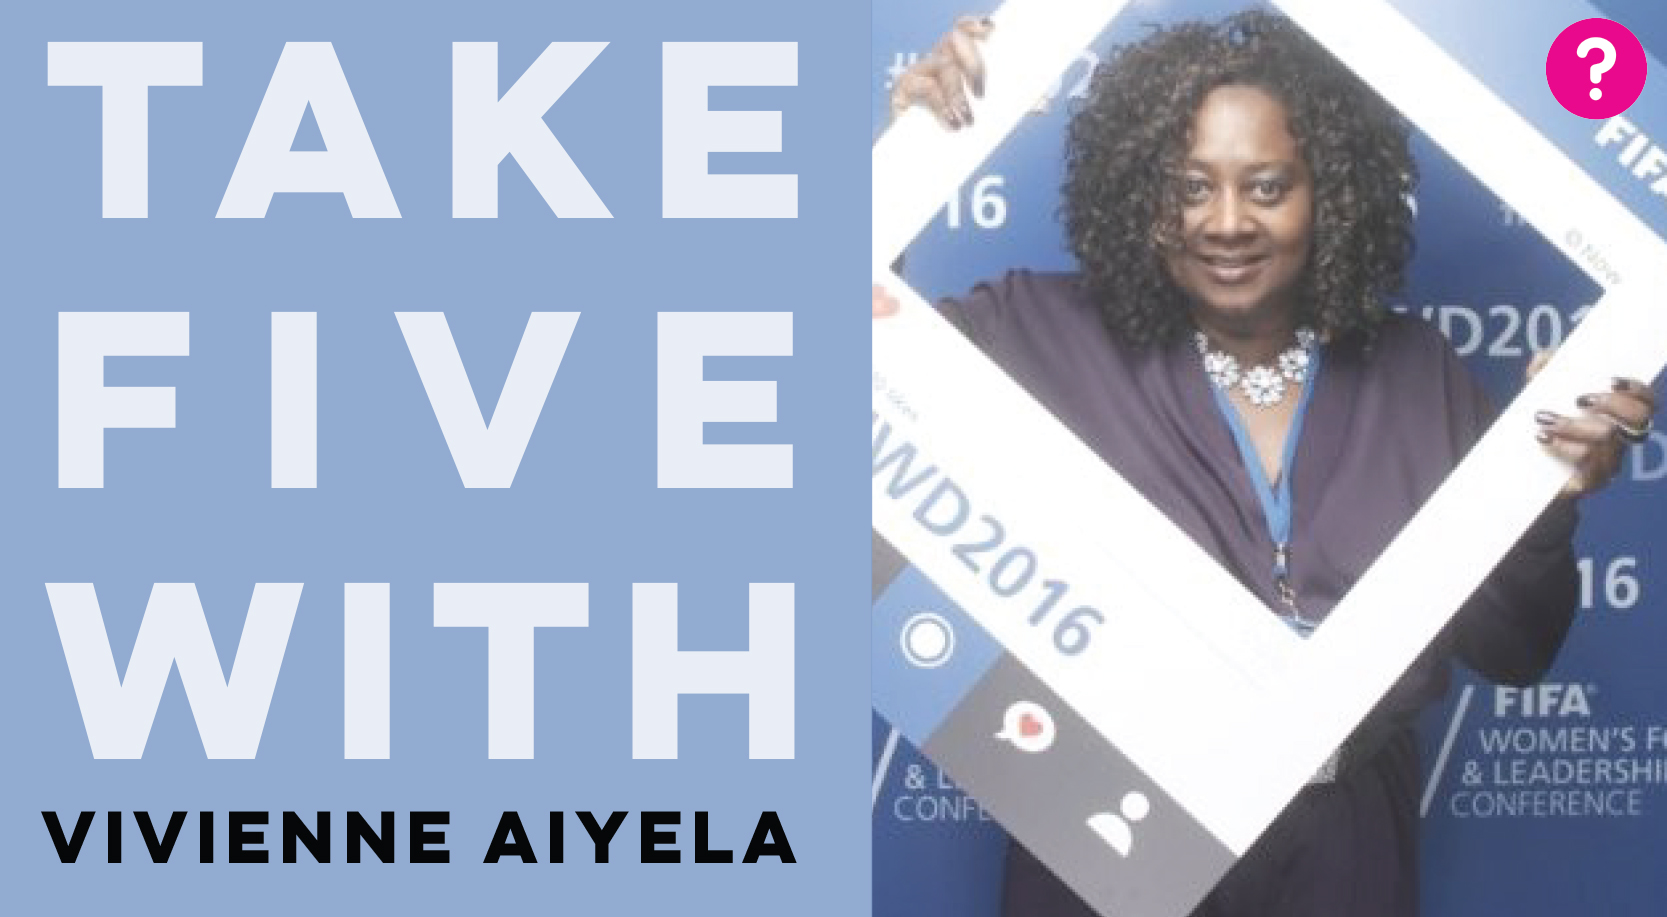 Take Five With Vivienne Aiyela - Vivienne is holding an instagram selfie frame at the 2016 FIFA Women's Football and Leadership Conference